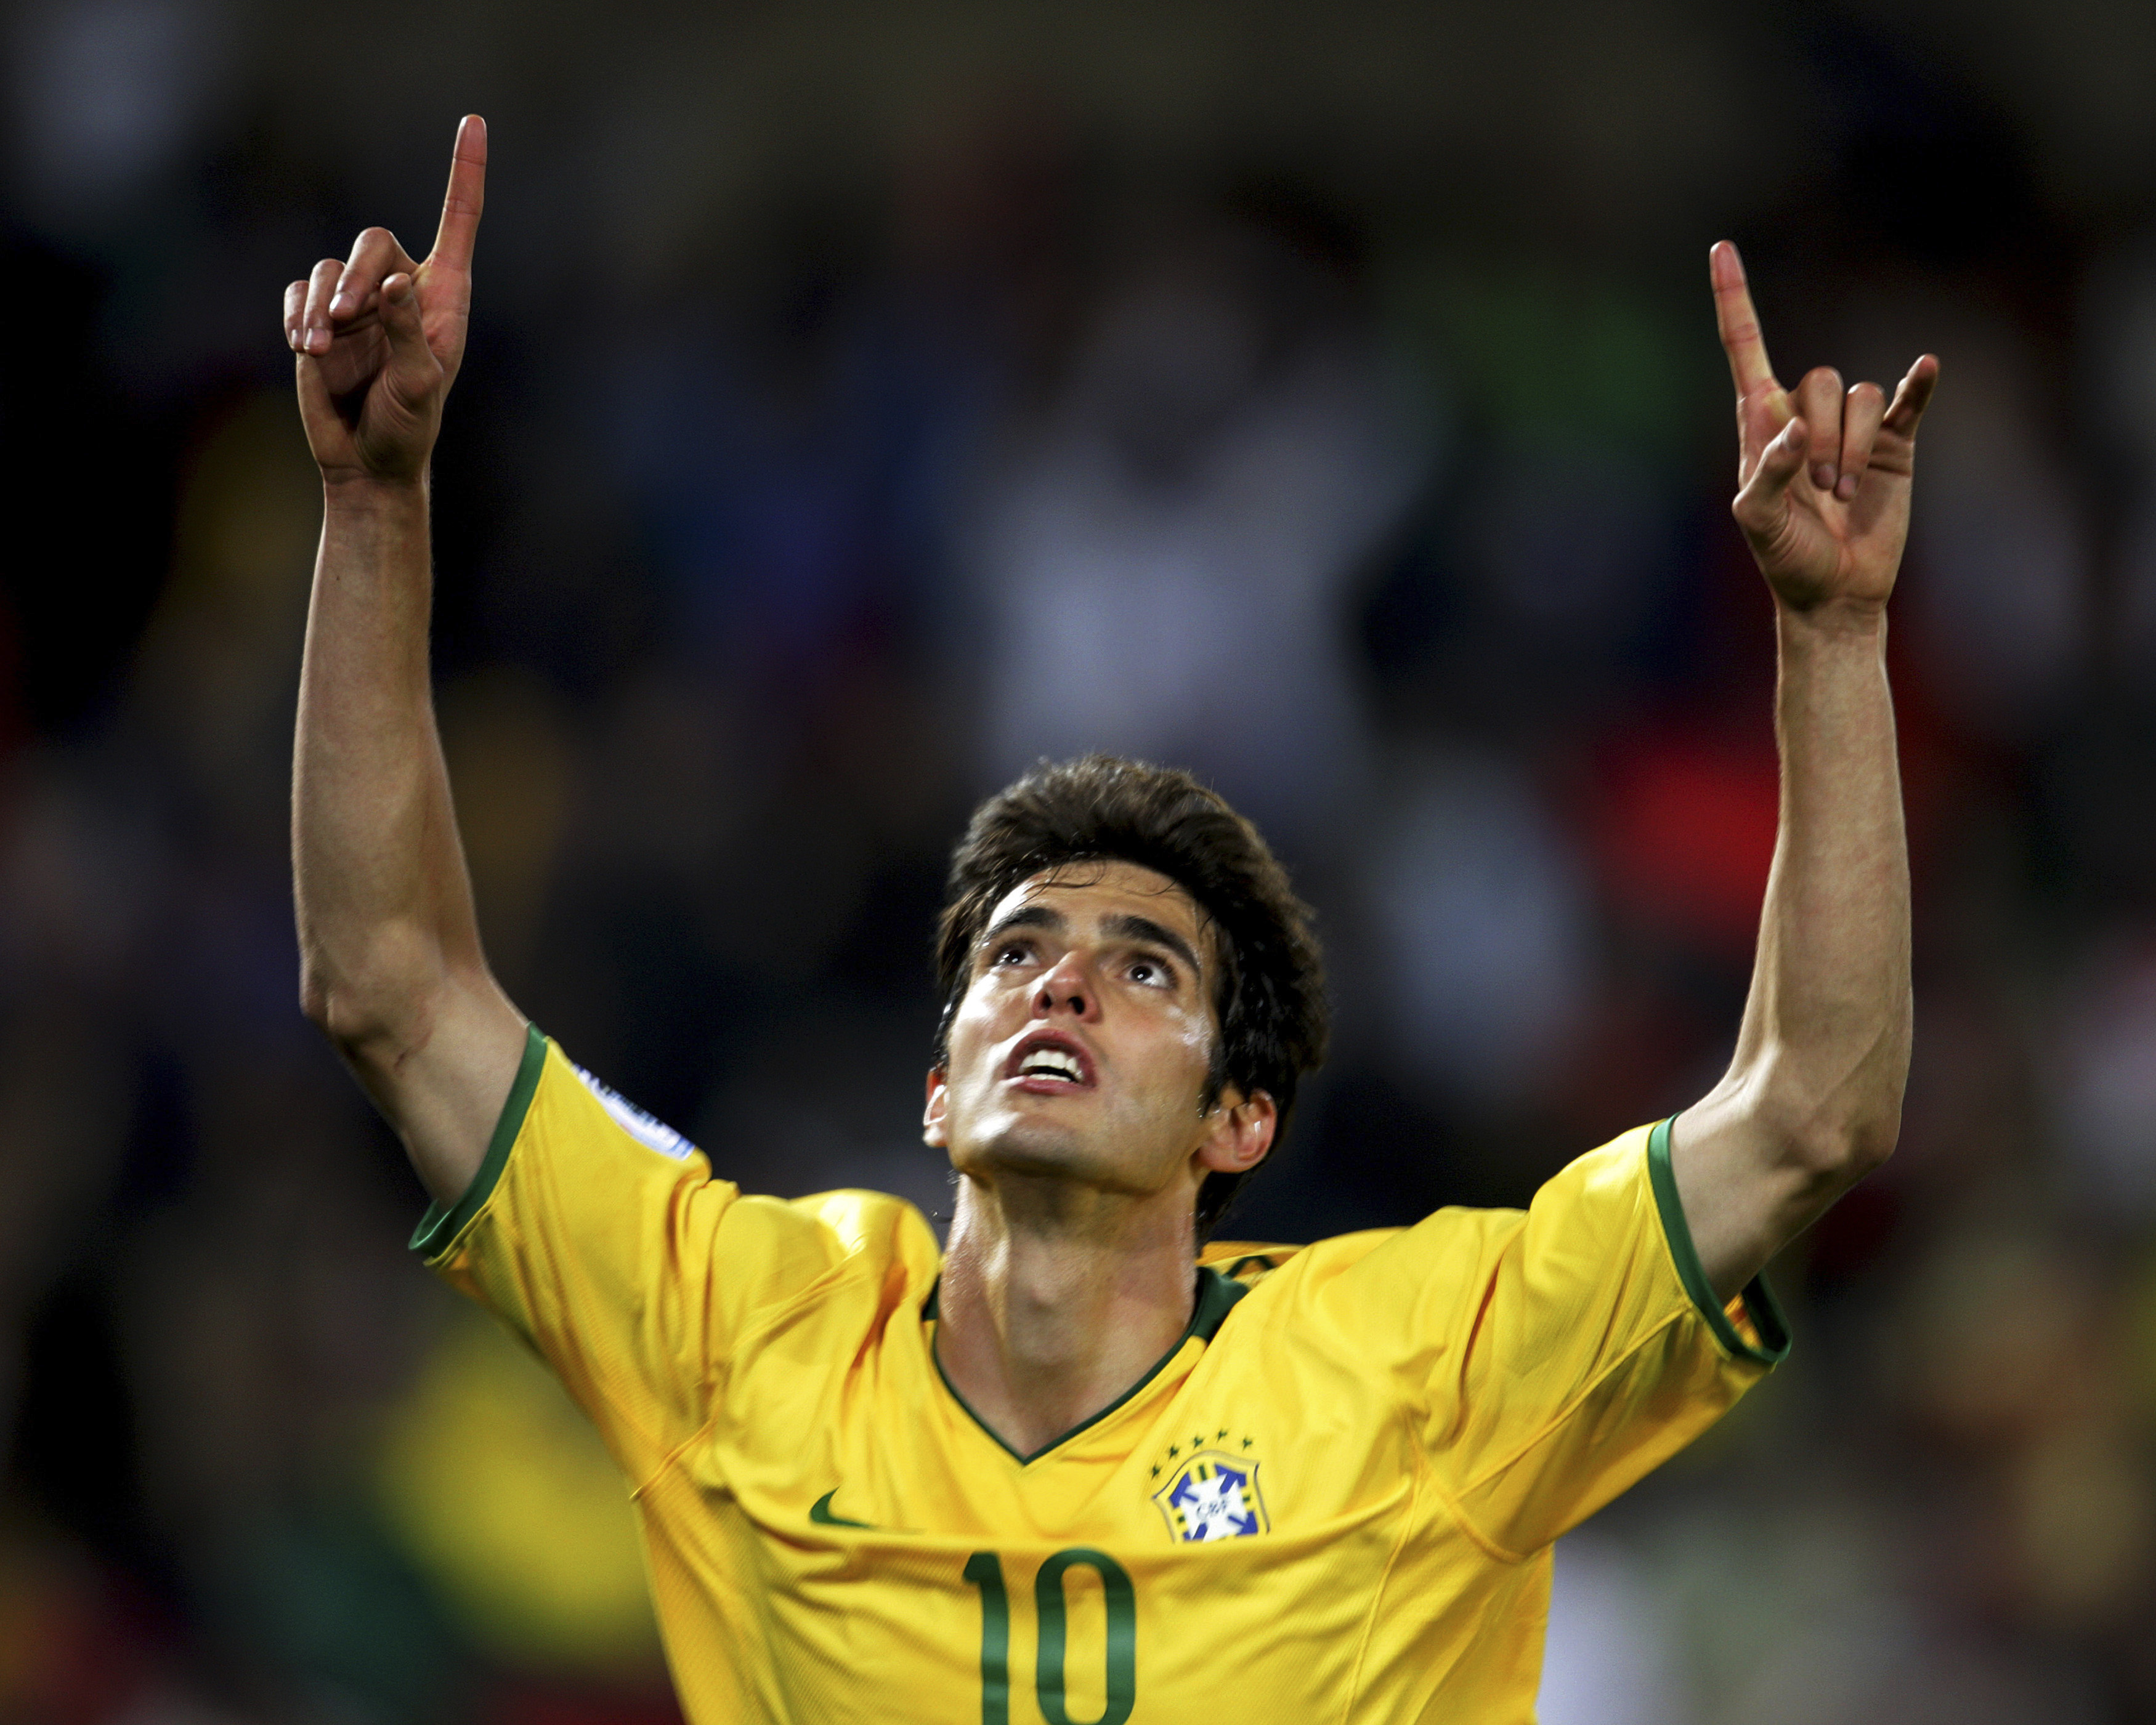 Ricardo Kaka Wallpapers Hd Best Wallpaper Pictures For Kaka Www Dararweyne Tk